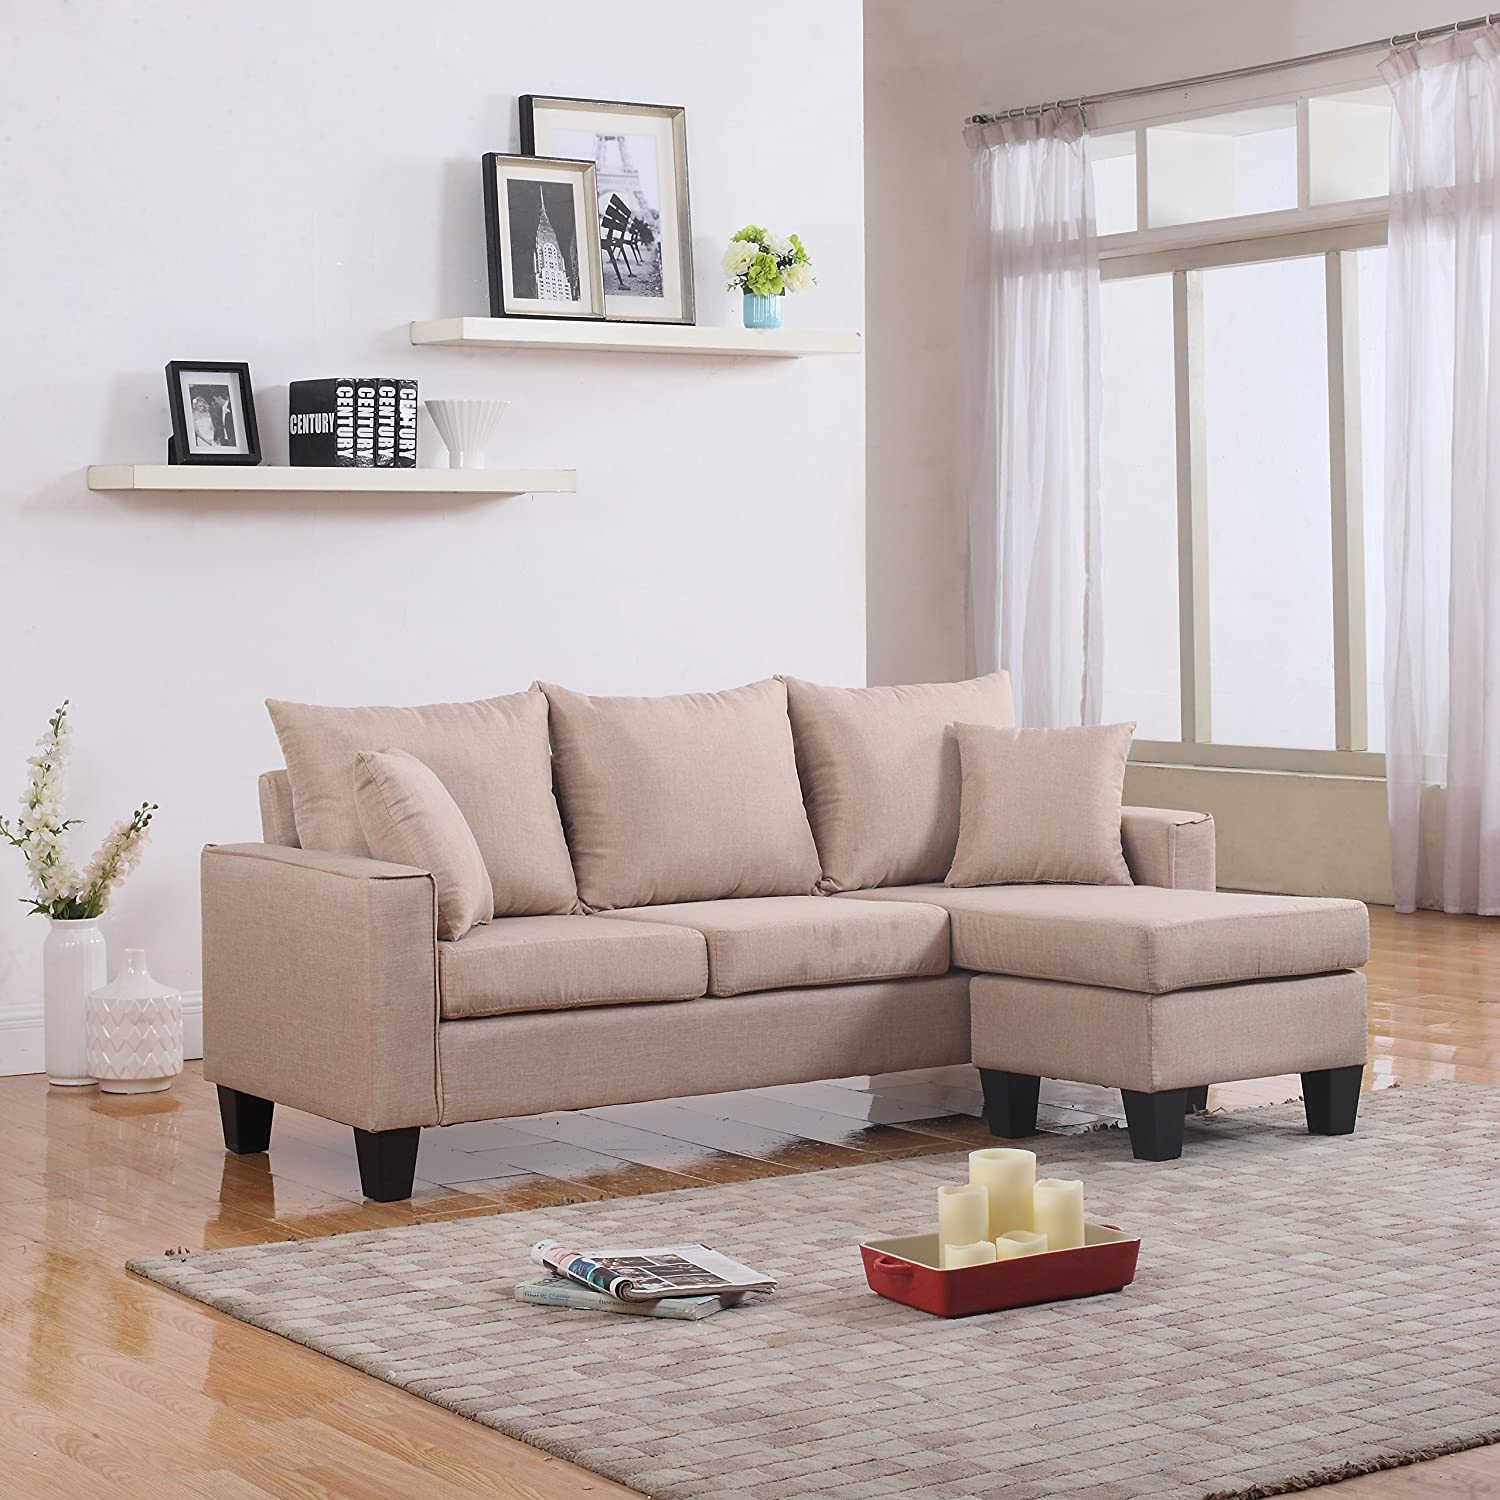 Amazon.com Modern Linen Fabric Small Space Sectional Sofa with Reversible Chaise (Apricot) Kitchen u0026 Dining : sectional sofa with reversible chaise - Sectionals, Sofas & Couches